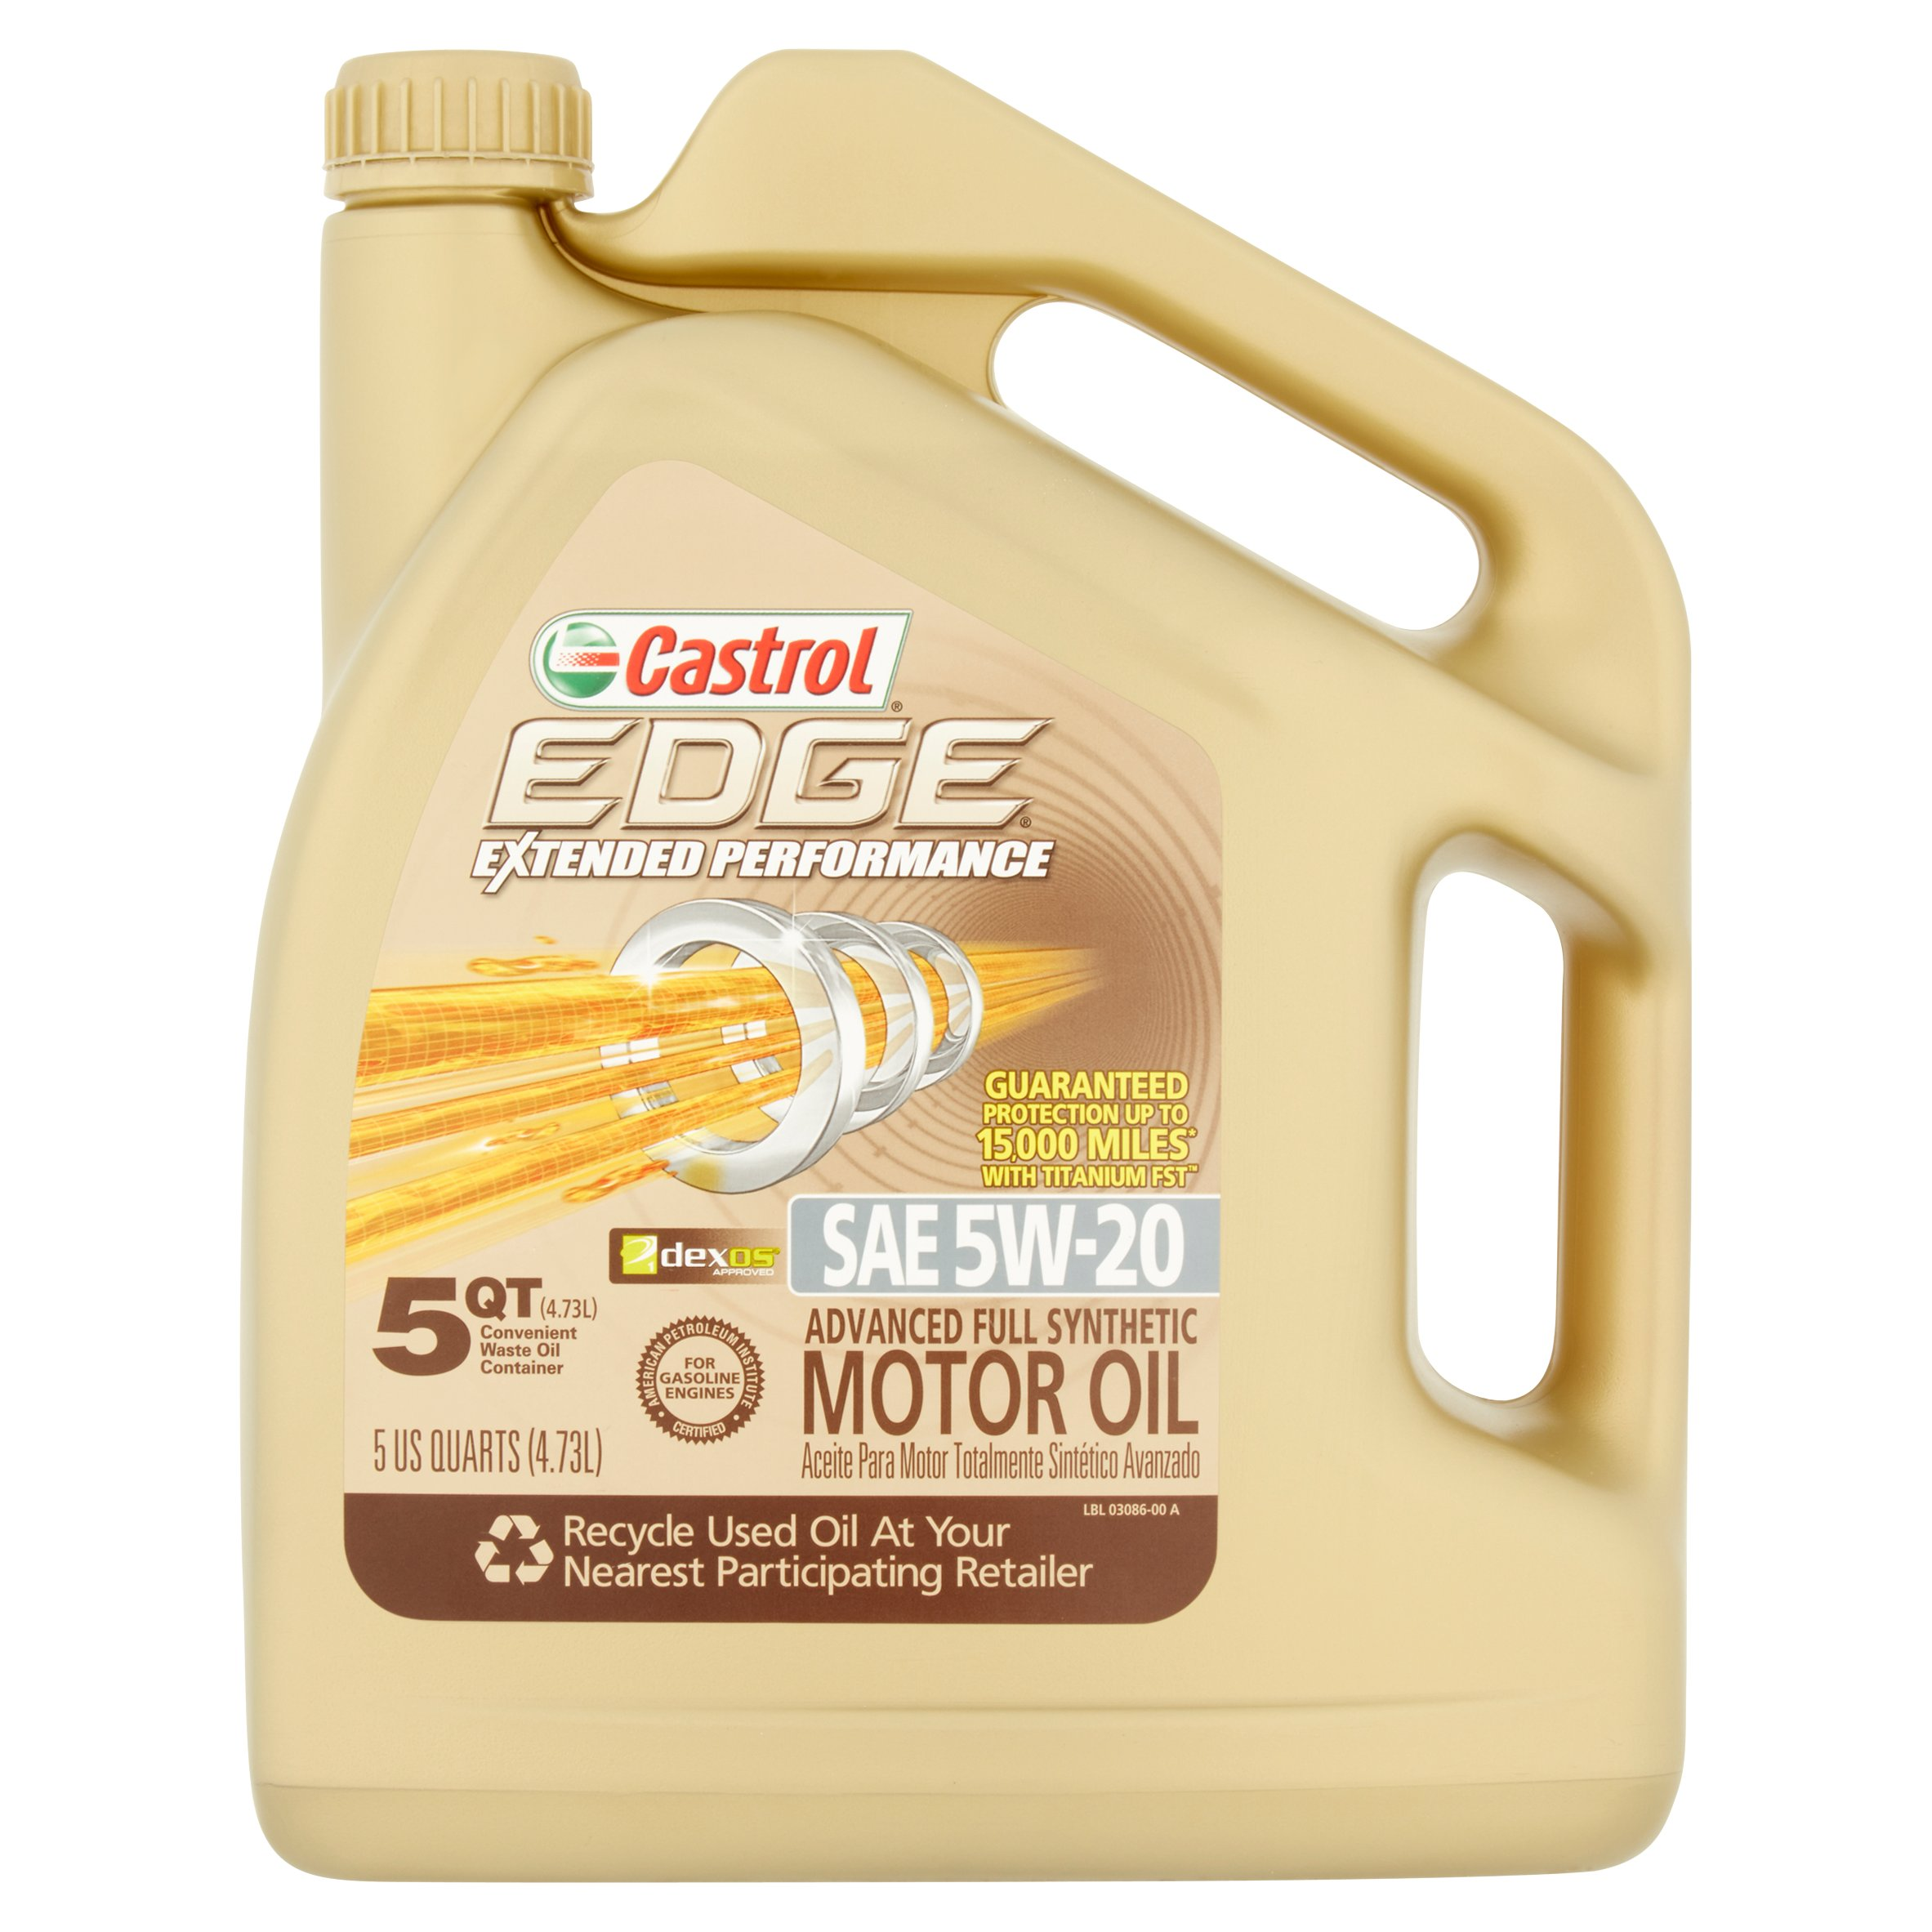 Castrol EDGE Extended Performance 5W-20 Full Synthetic Motor Oil, 5 qt. by Castrol